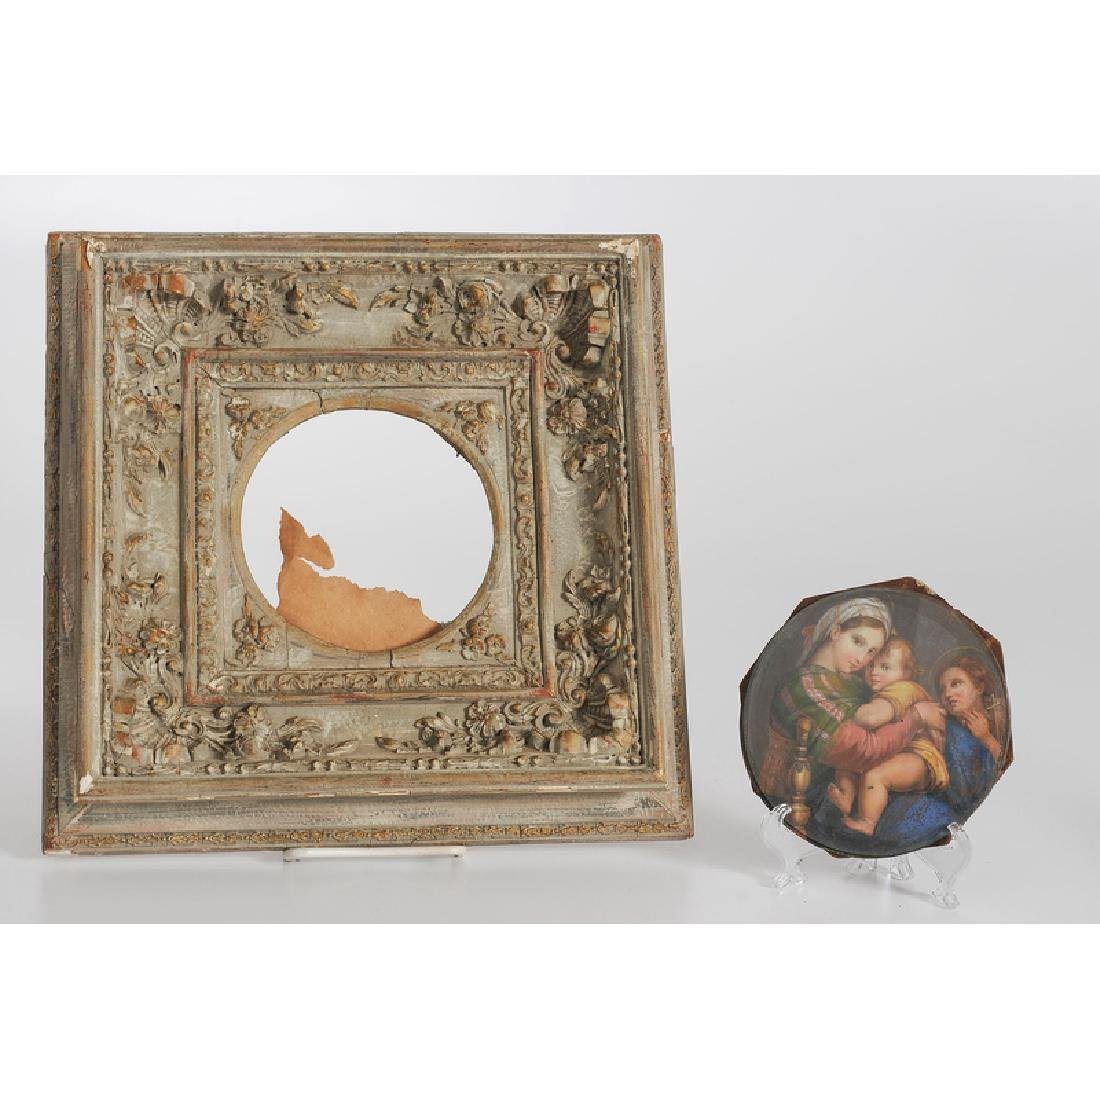 Painted Copper Medallion with Religious Scene